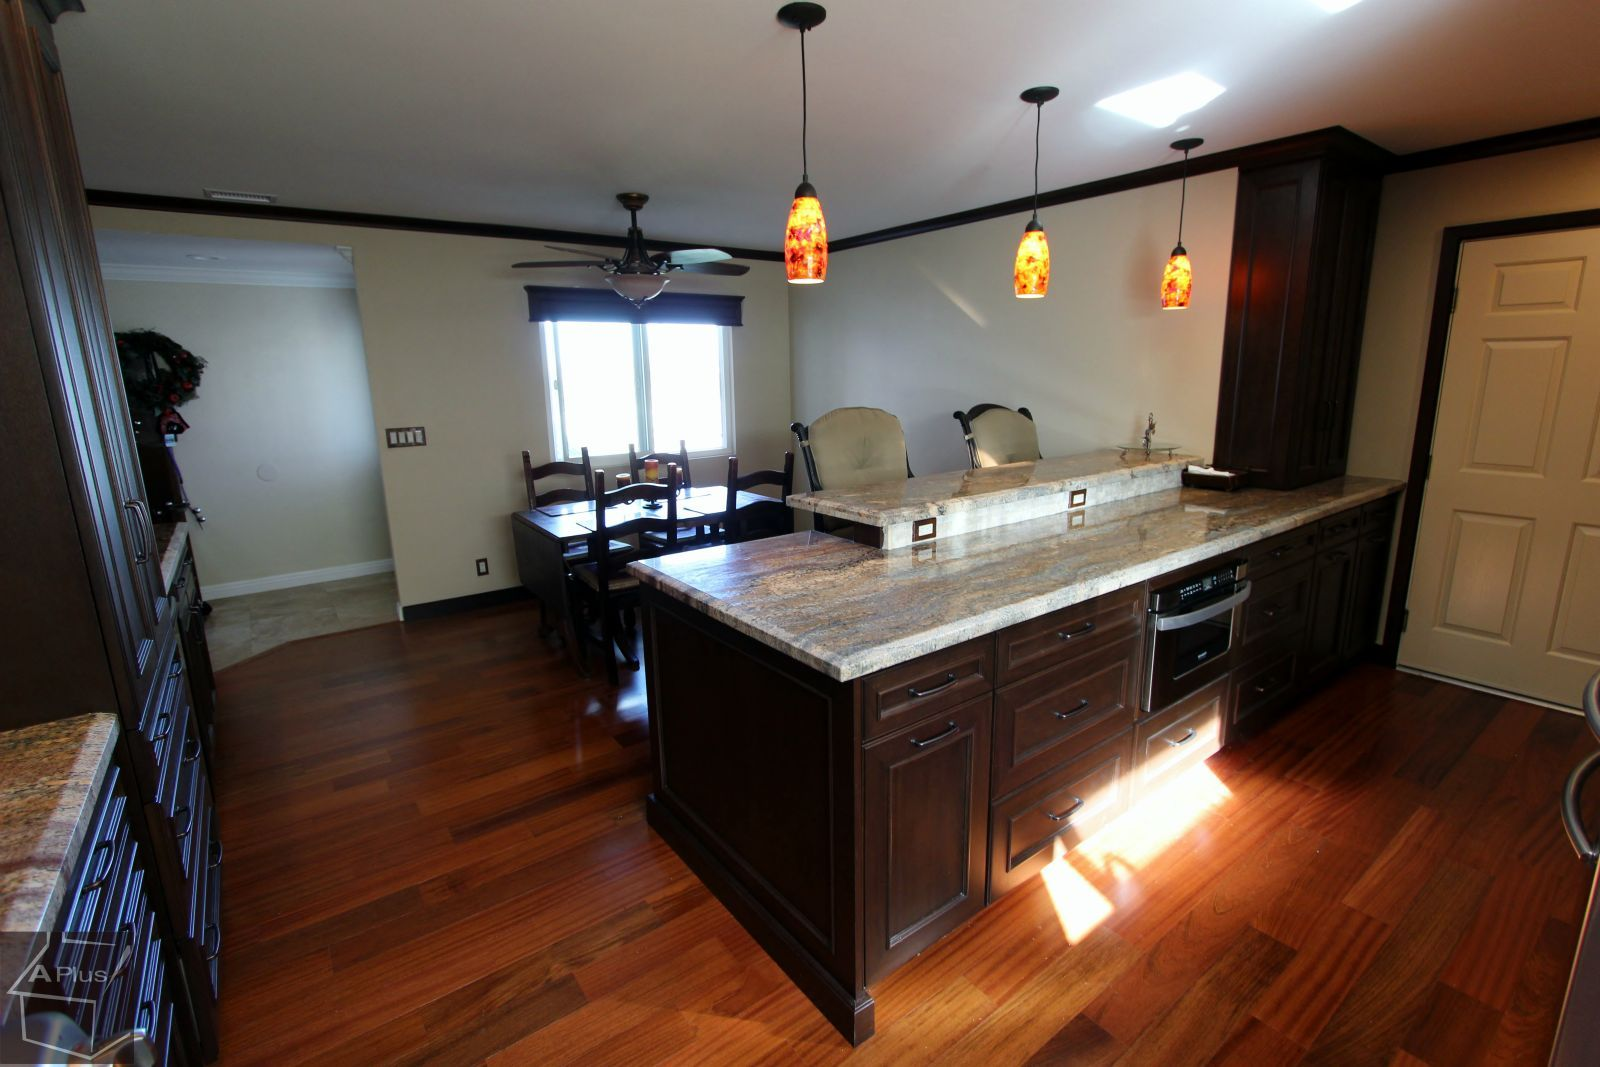 Kitchen Remodel With Custom Cabinets In Laguna Niguel Orange County